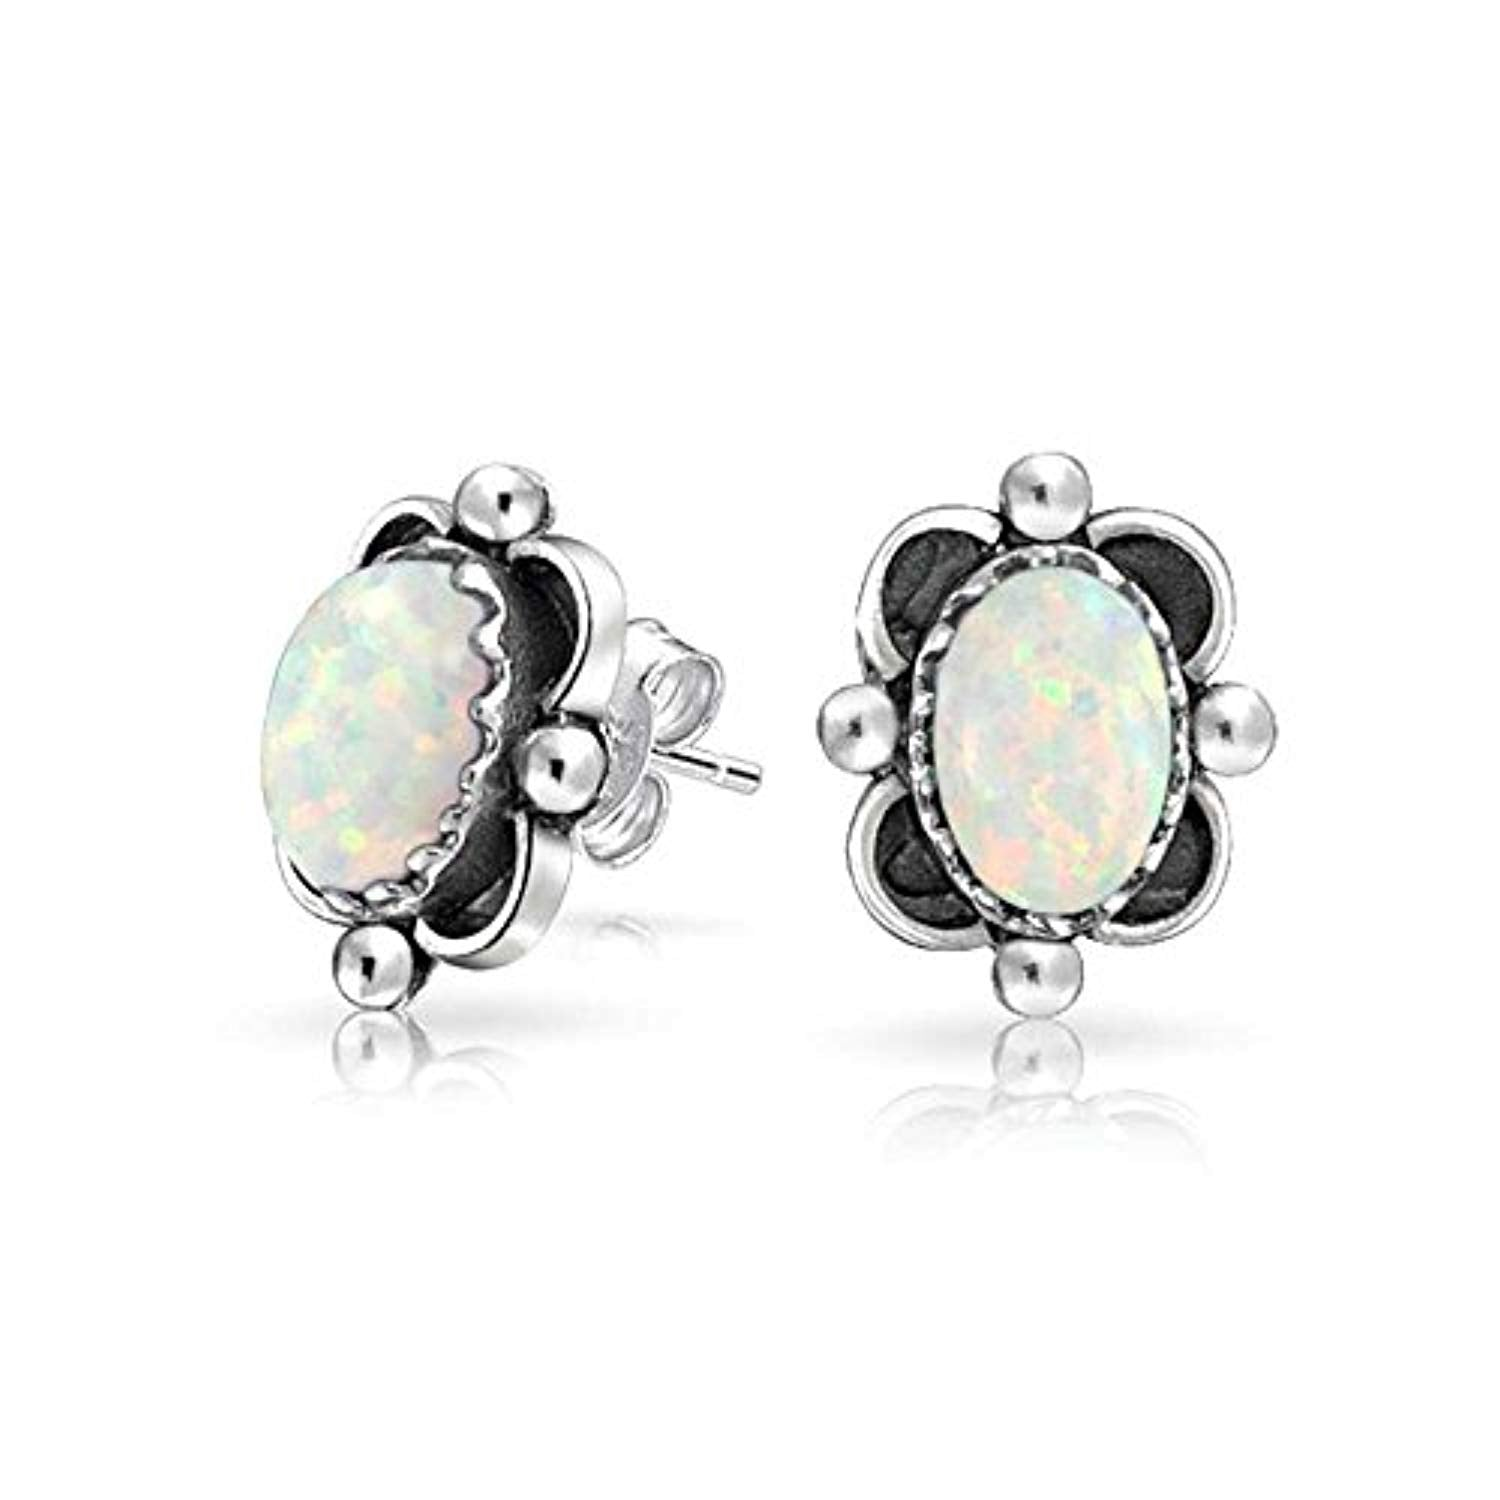 Boho Bali Style Oval Gemstone Stud Earrings Oxidized 925 Sterling Silver